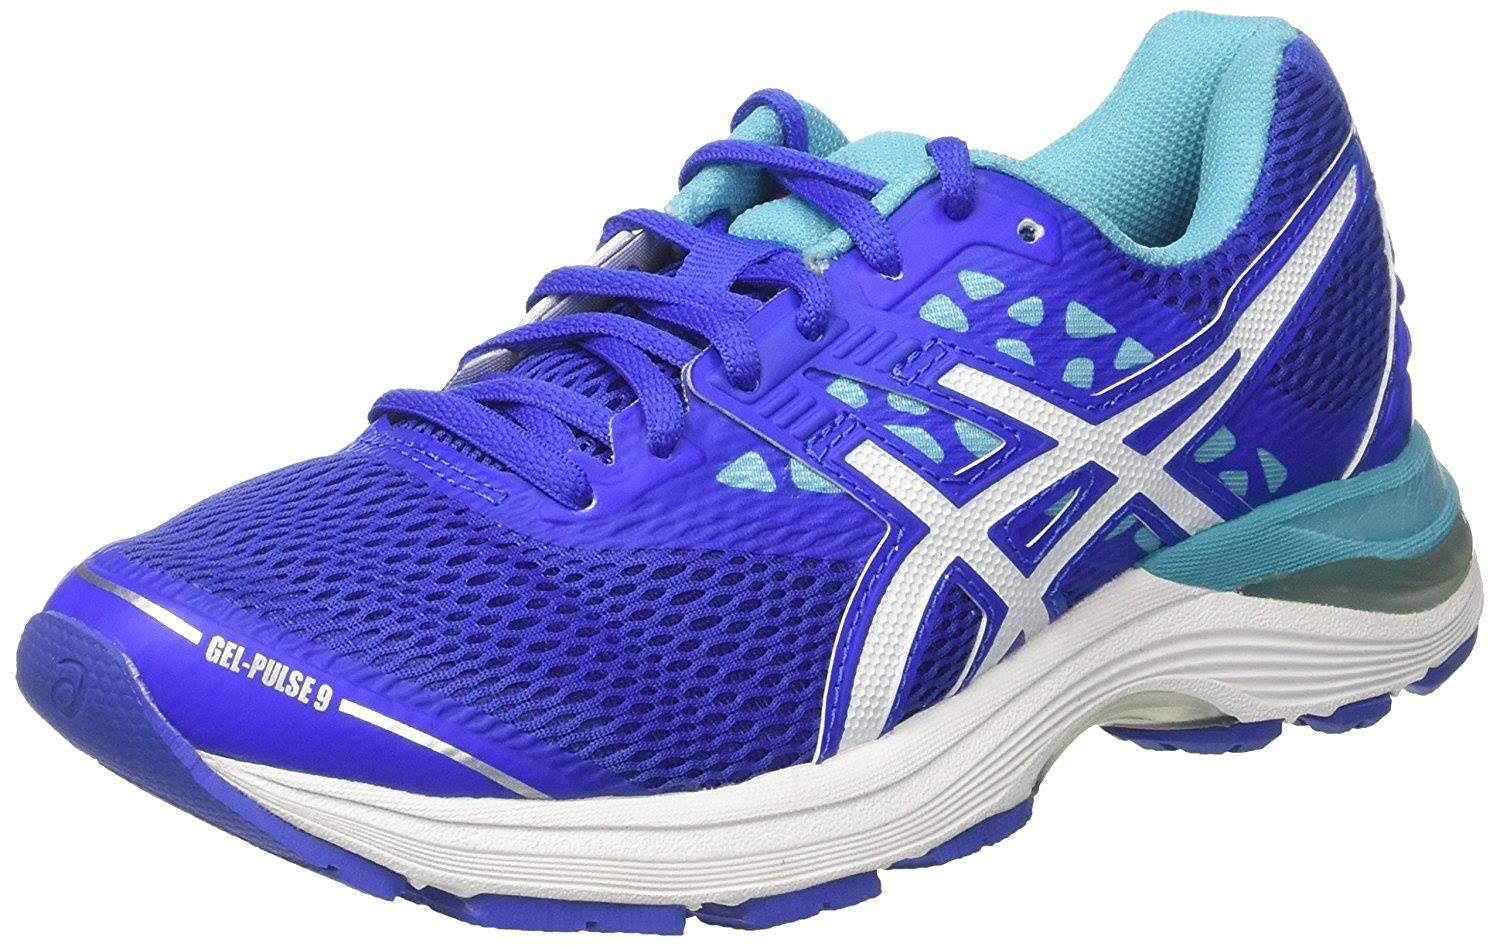 Blue Asics Gel Pulse 9 Running Shoes Womens rWYpwY0q6